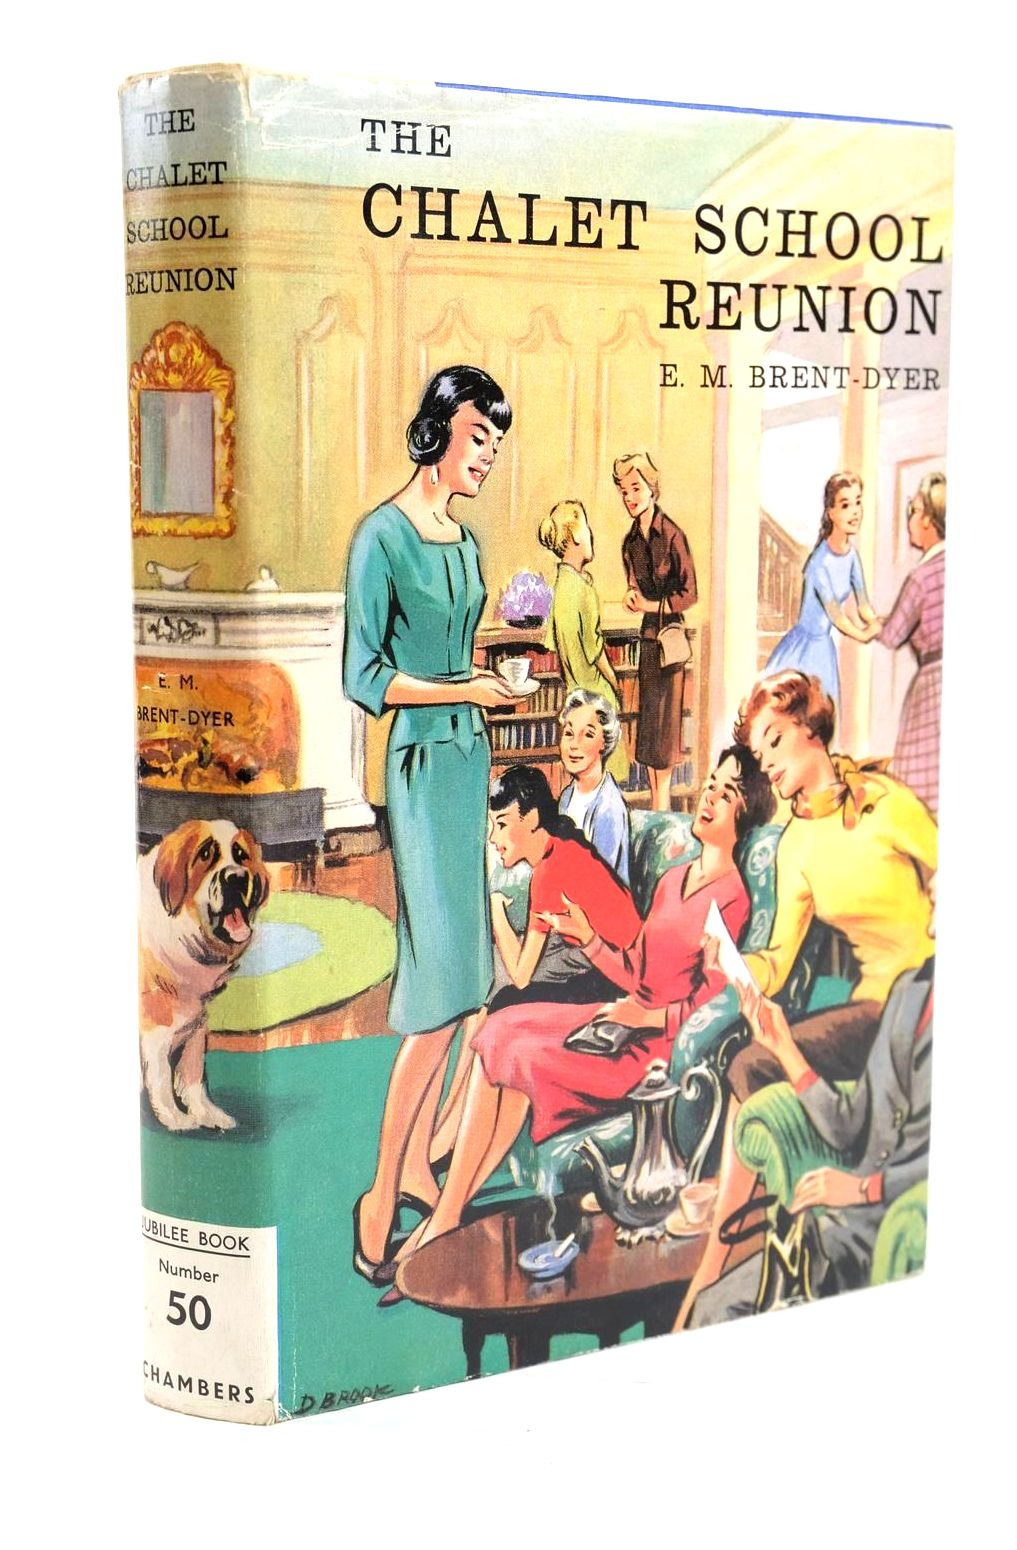 Photo of THE CHALET SCHOOL REUNION written by Brent-Dyer, Elinor M. illustrated by Brook, Dorothy published by W. & R. Chambers Limited (STOCK CODE: 1319837)  for sale by Stella & Rose's Books